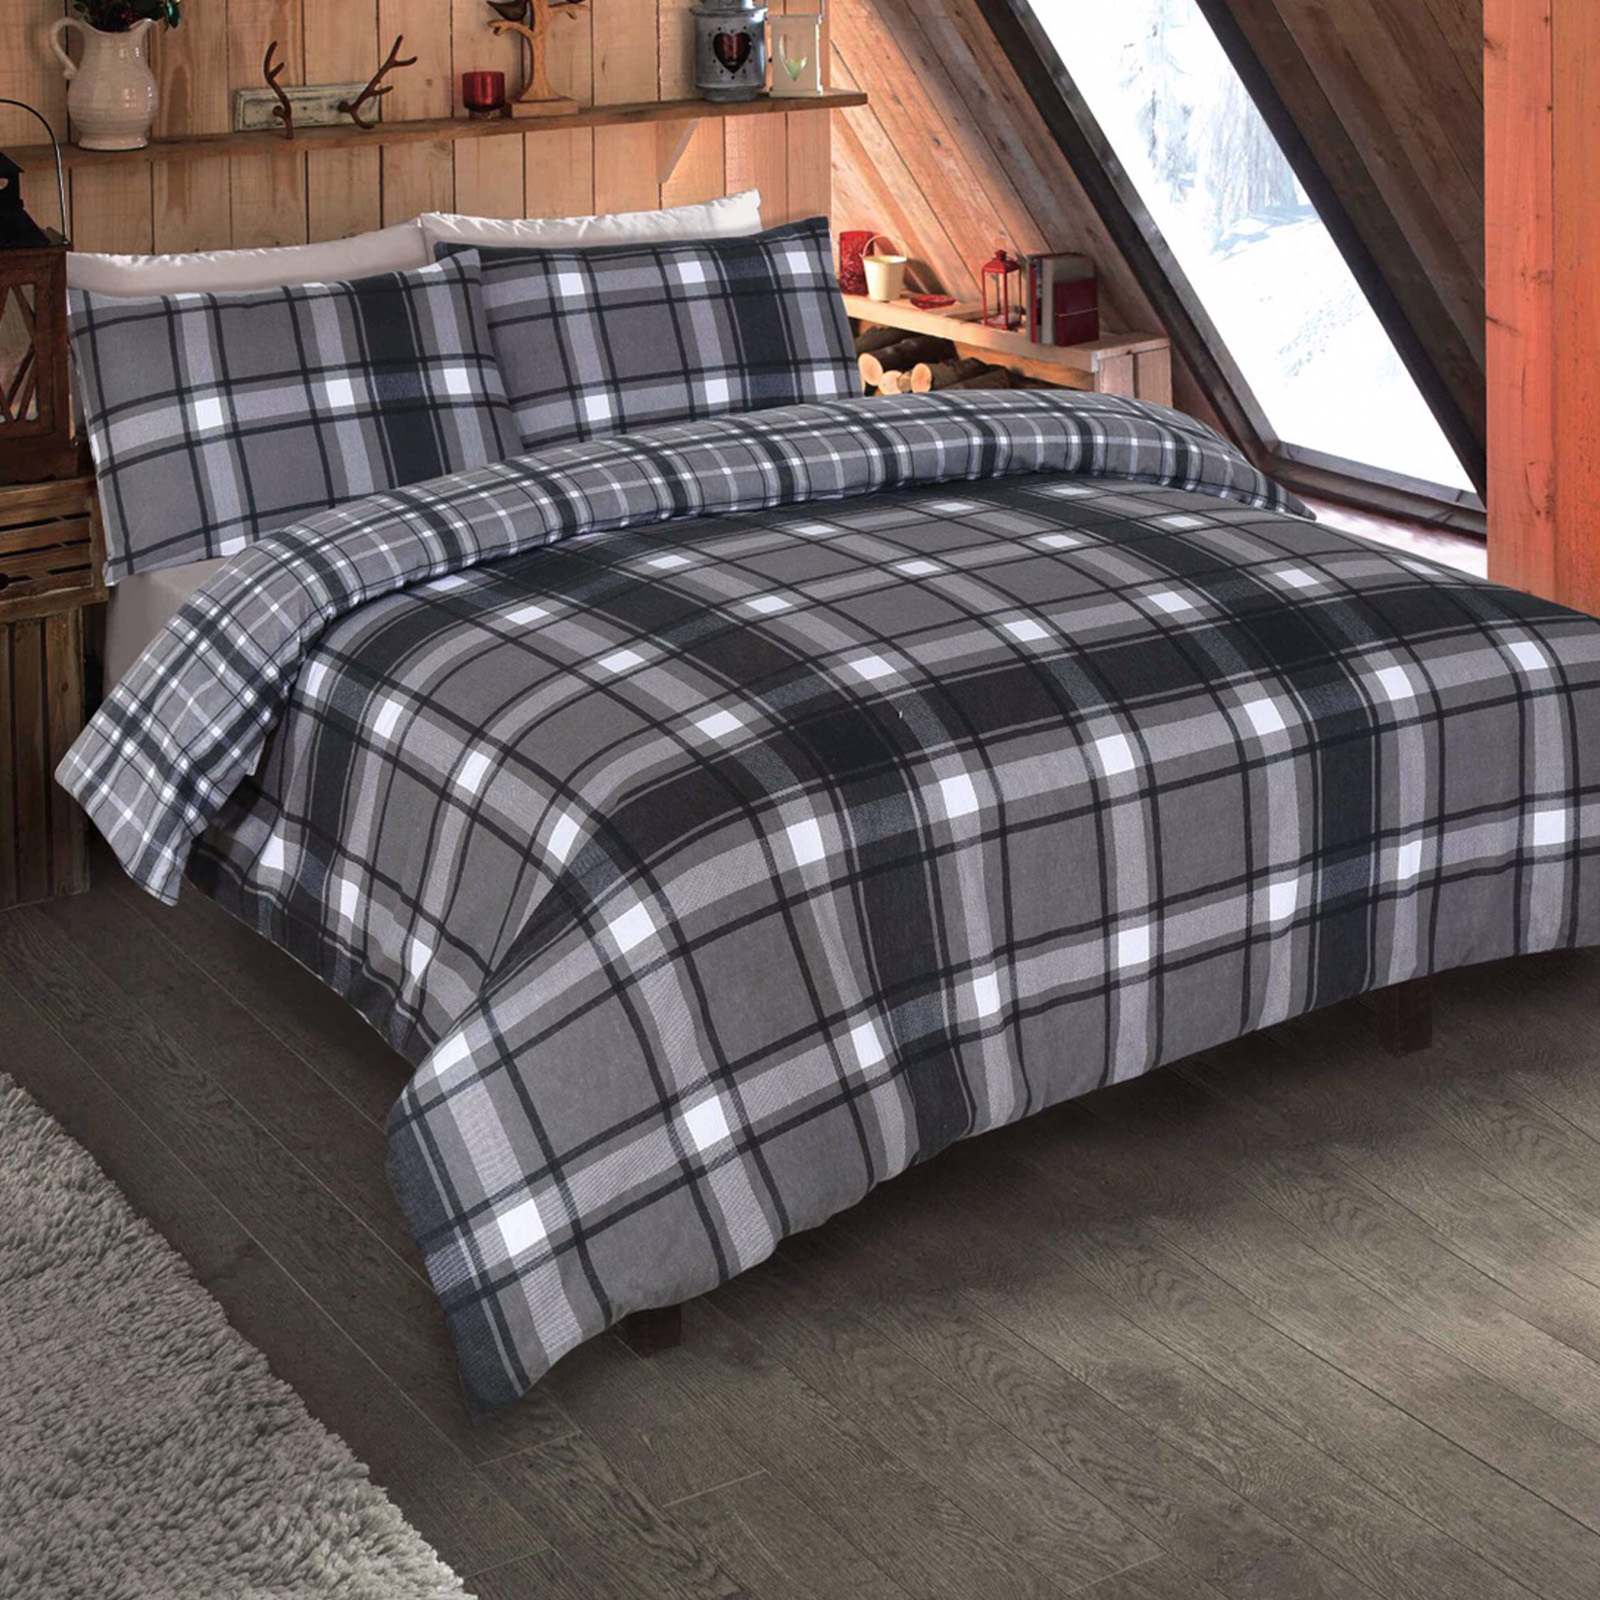 Brushed Cotton Tartan Duvet Cover With Pillowcase Set